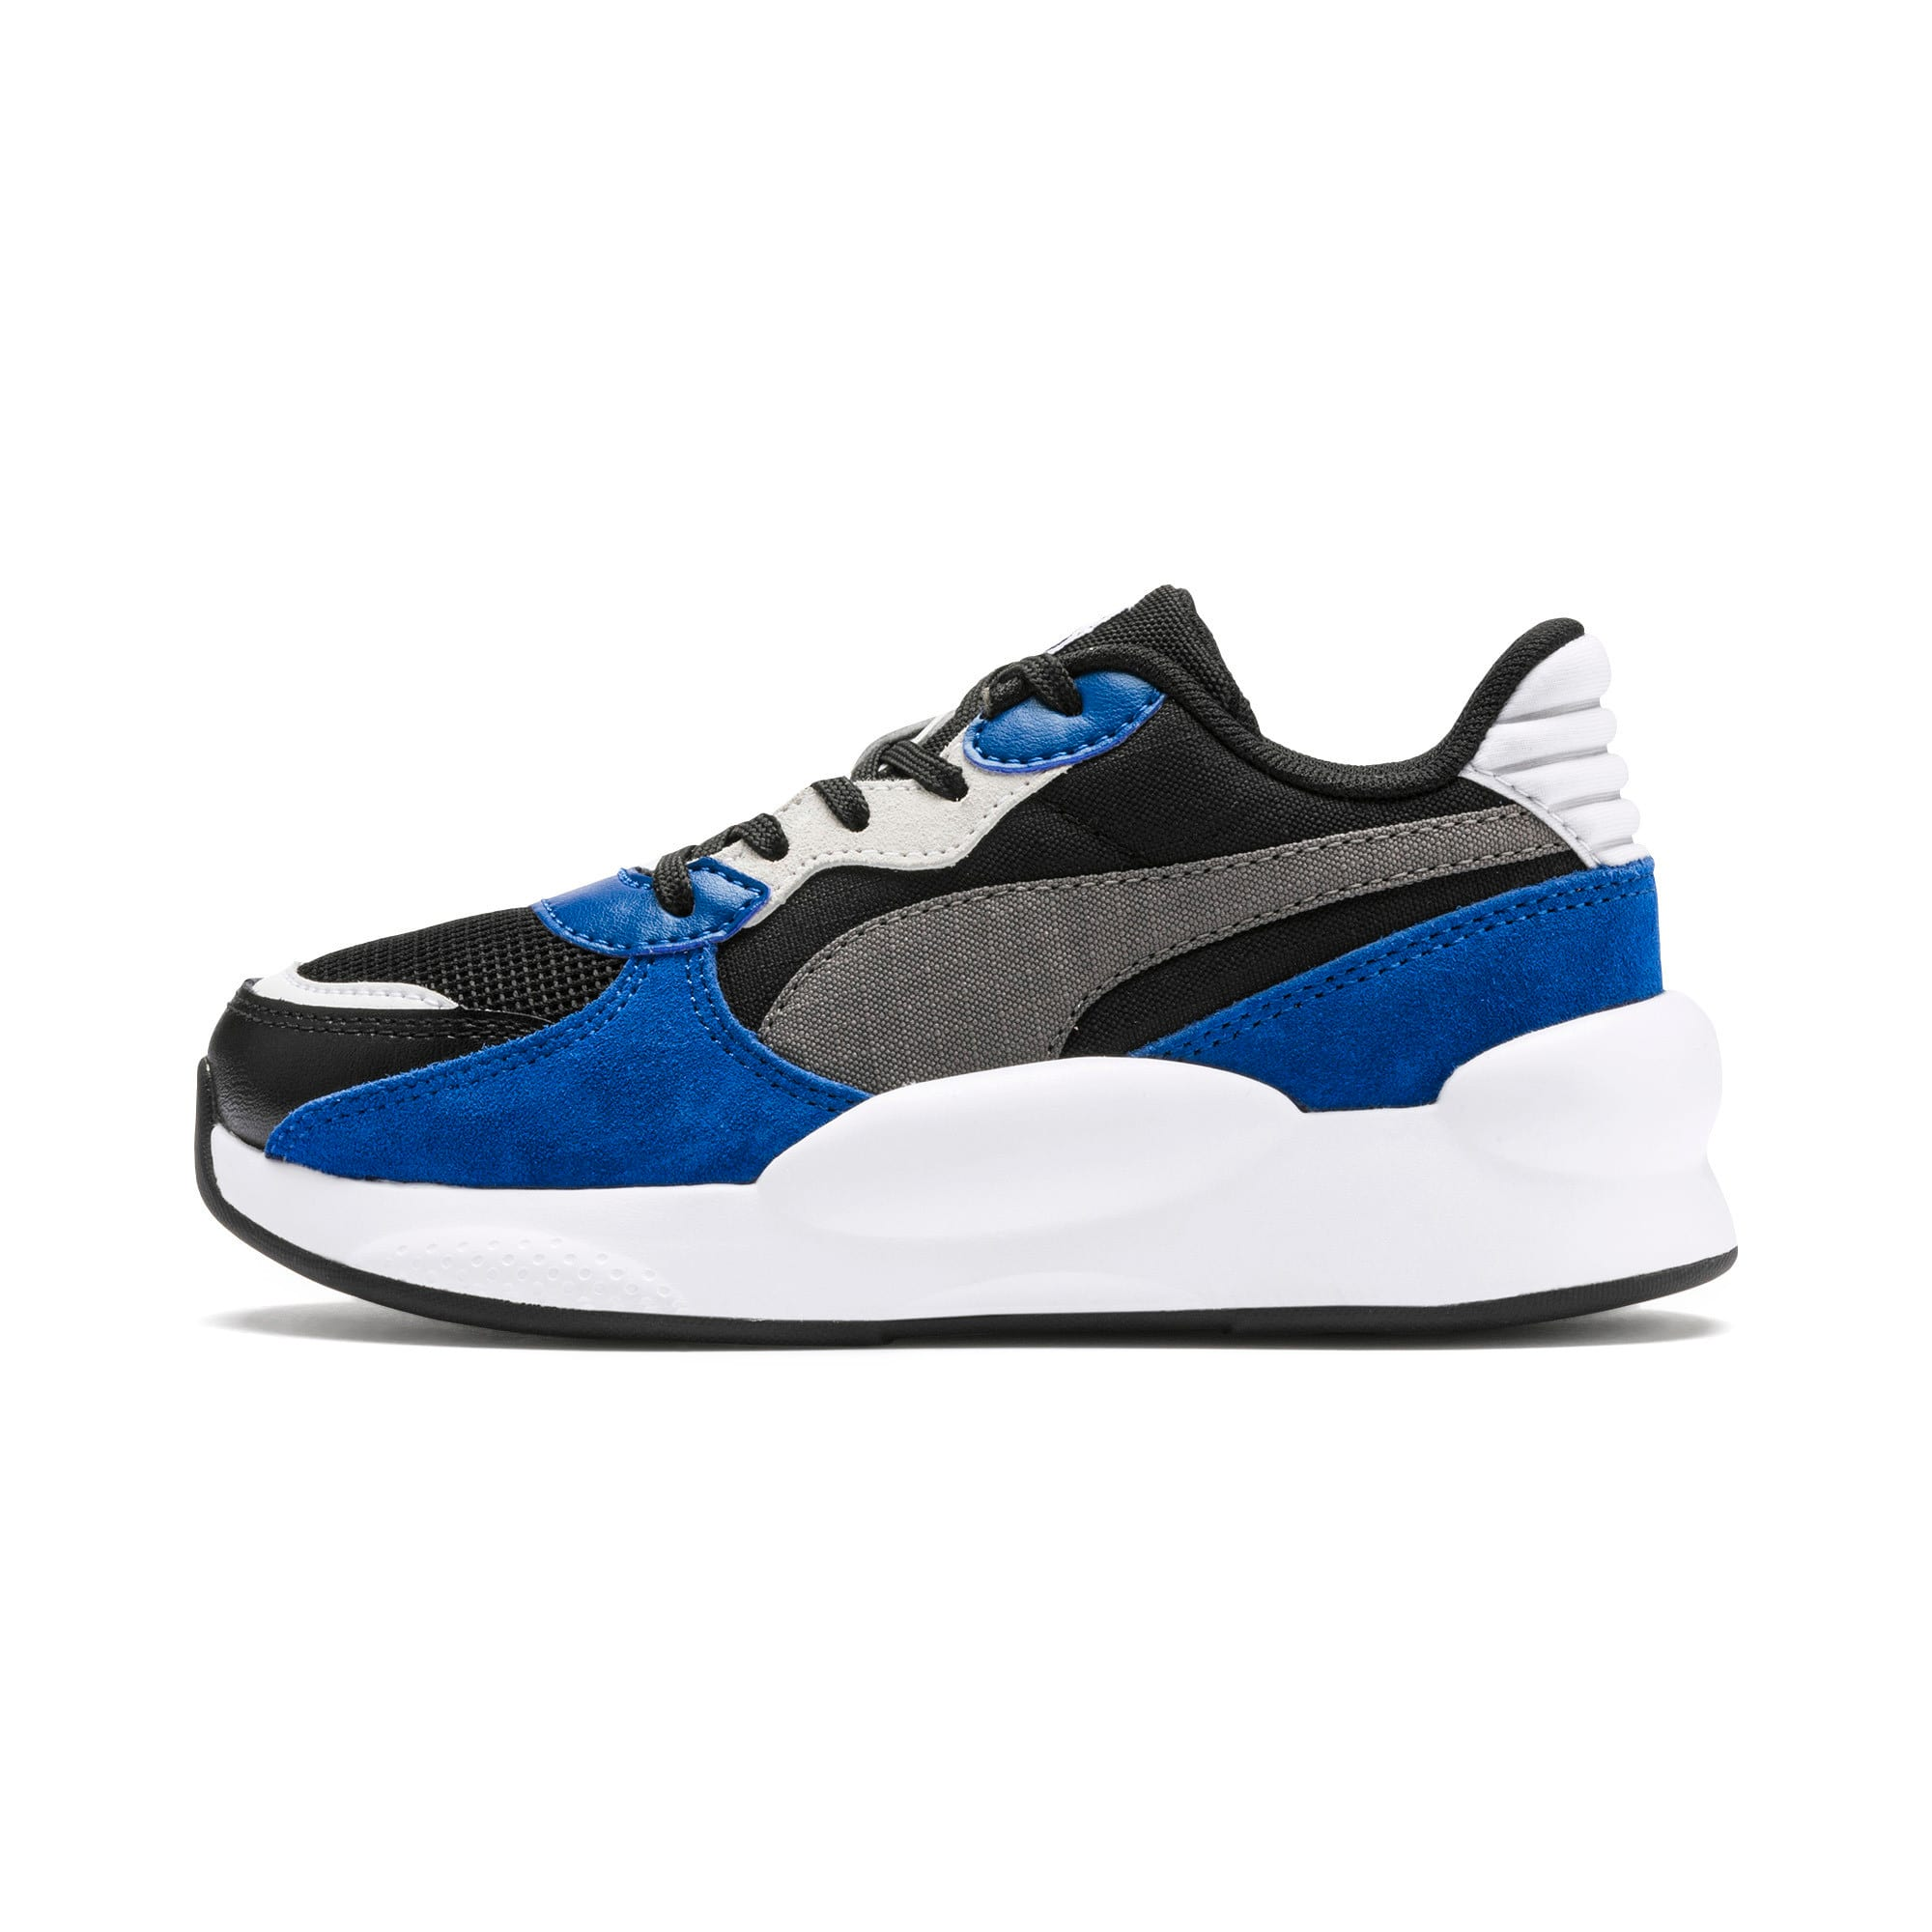 Thumbnail 1 of RS 9.8 Space Kids' Trainers, Puma Black-Galaxy Blue, medium